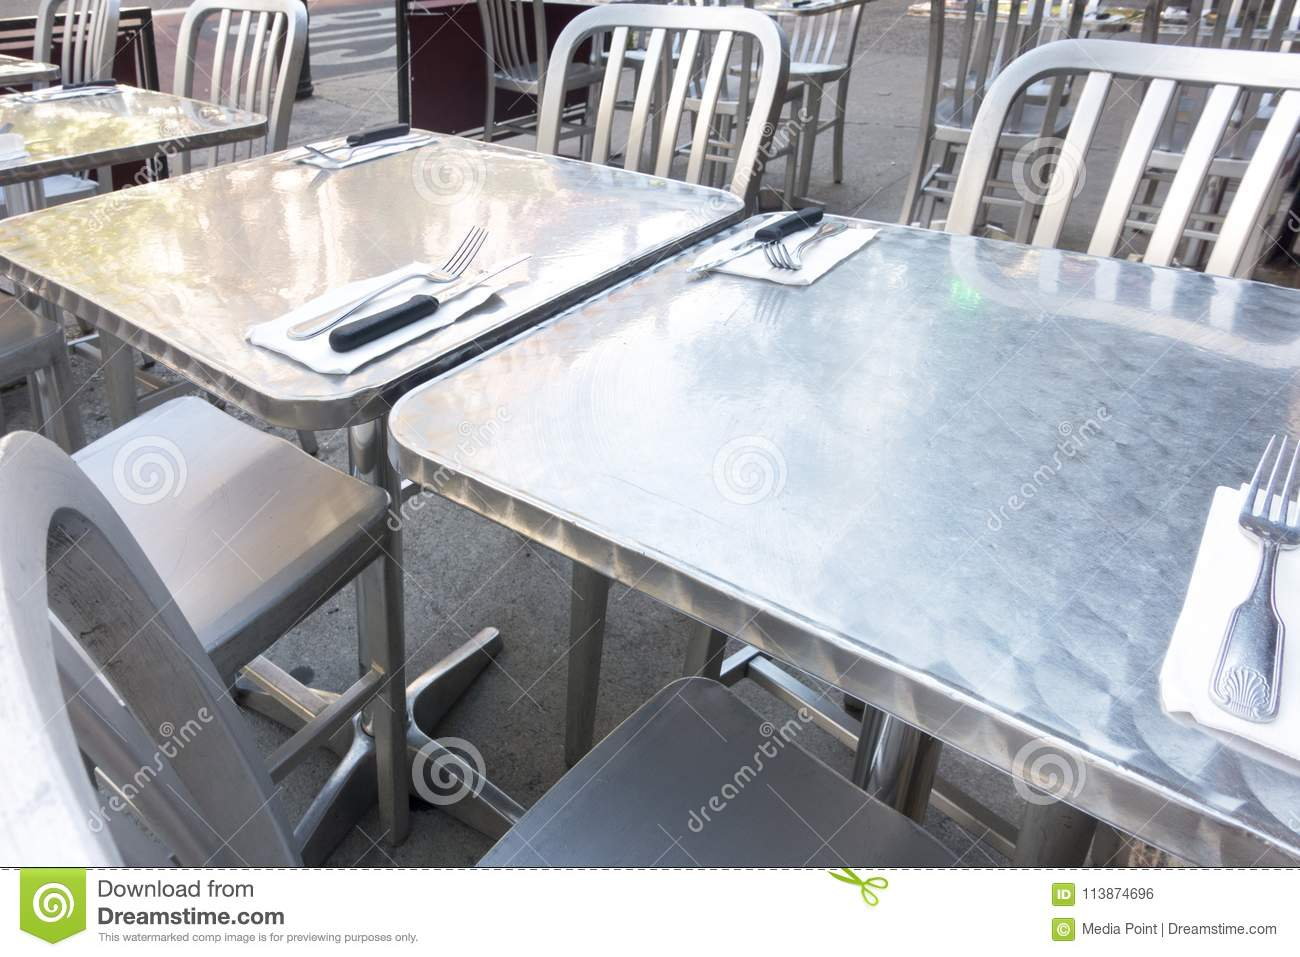 Stainless Restaurant Table Stainless Steel Outdoor Restaurant Table And Chairs Stock Photo